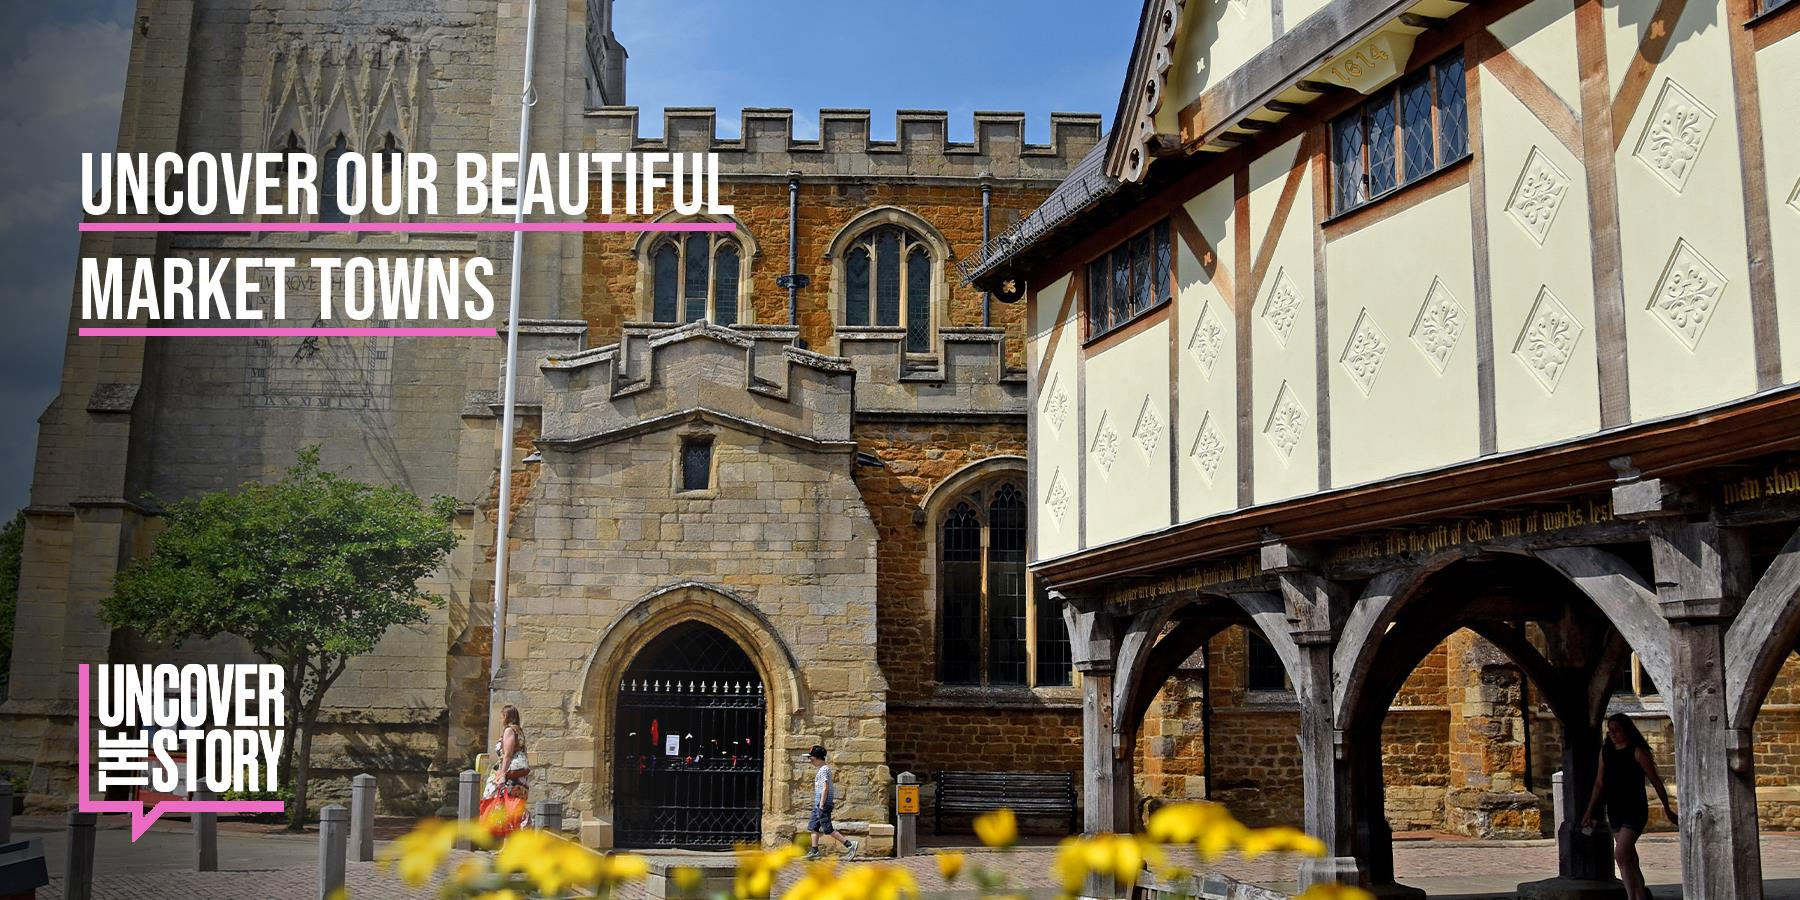 Uncover our Beautiful Market Towns HEADER IMAGE